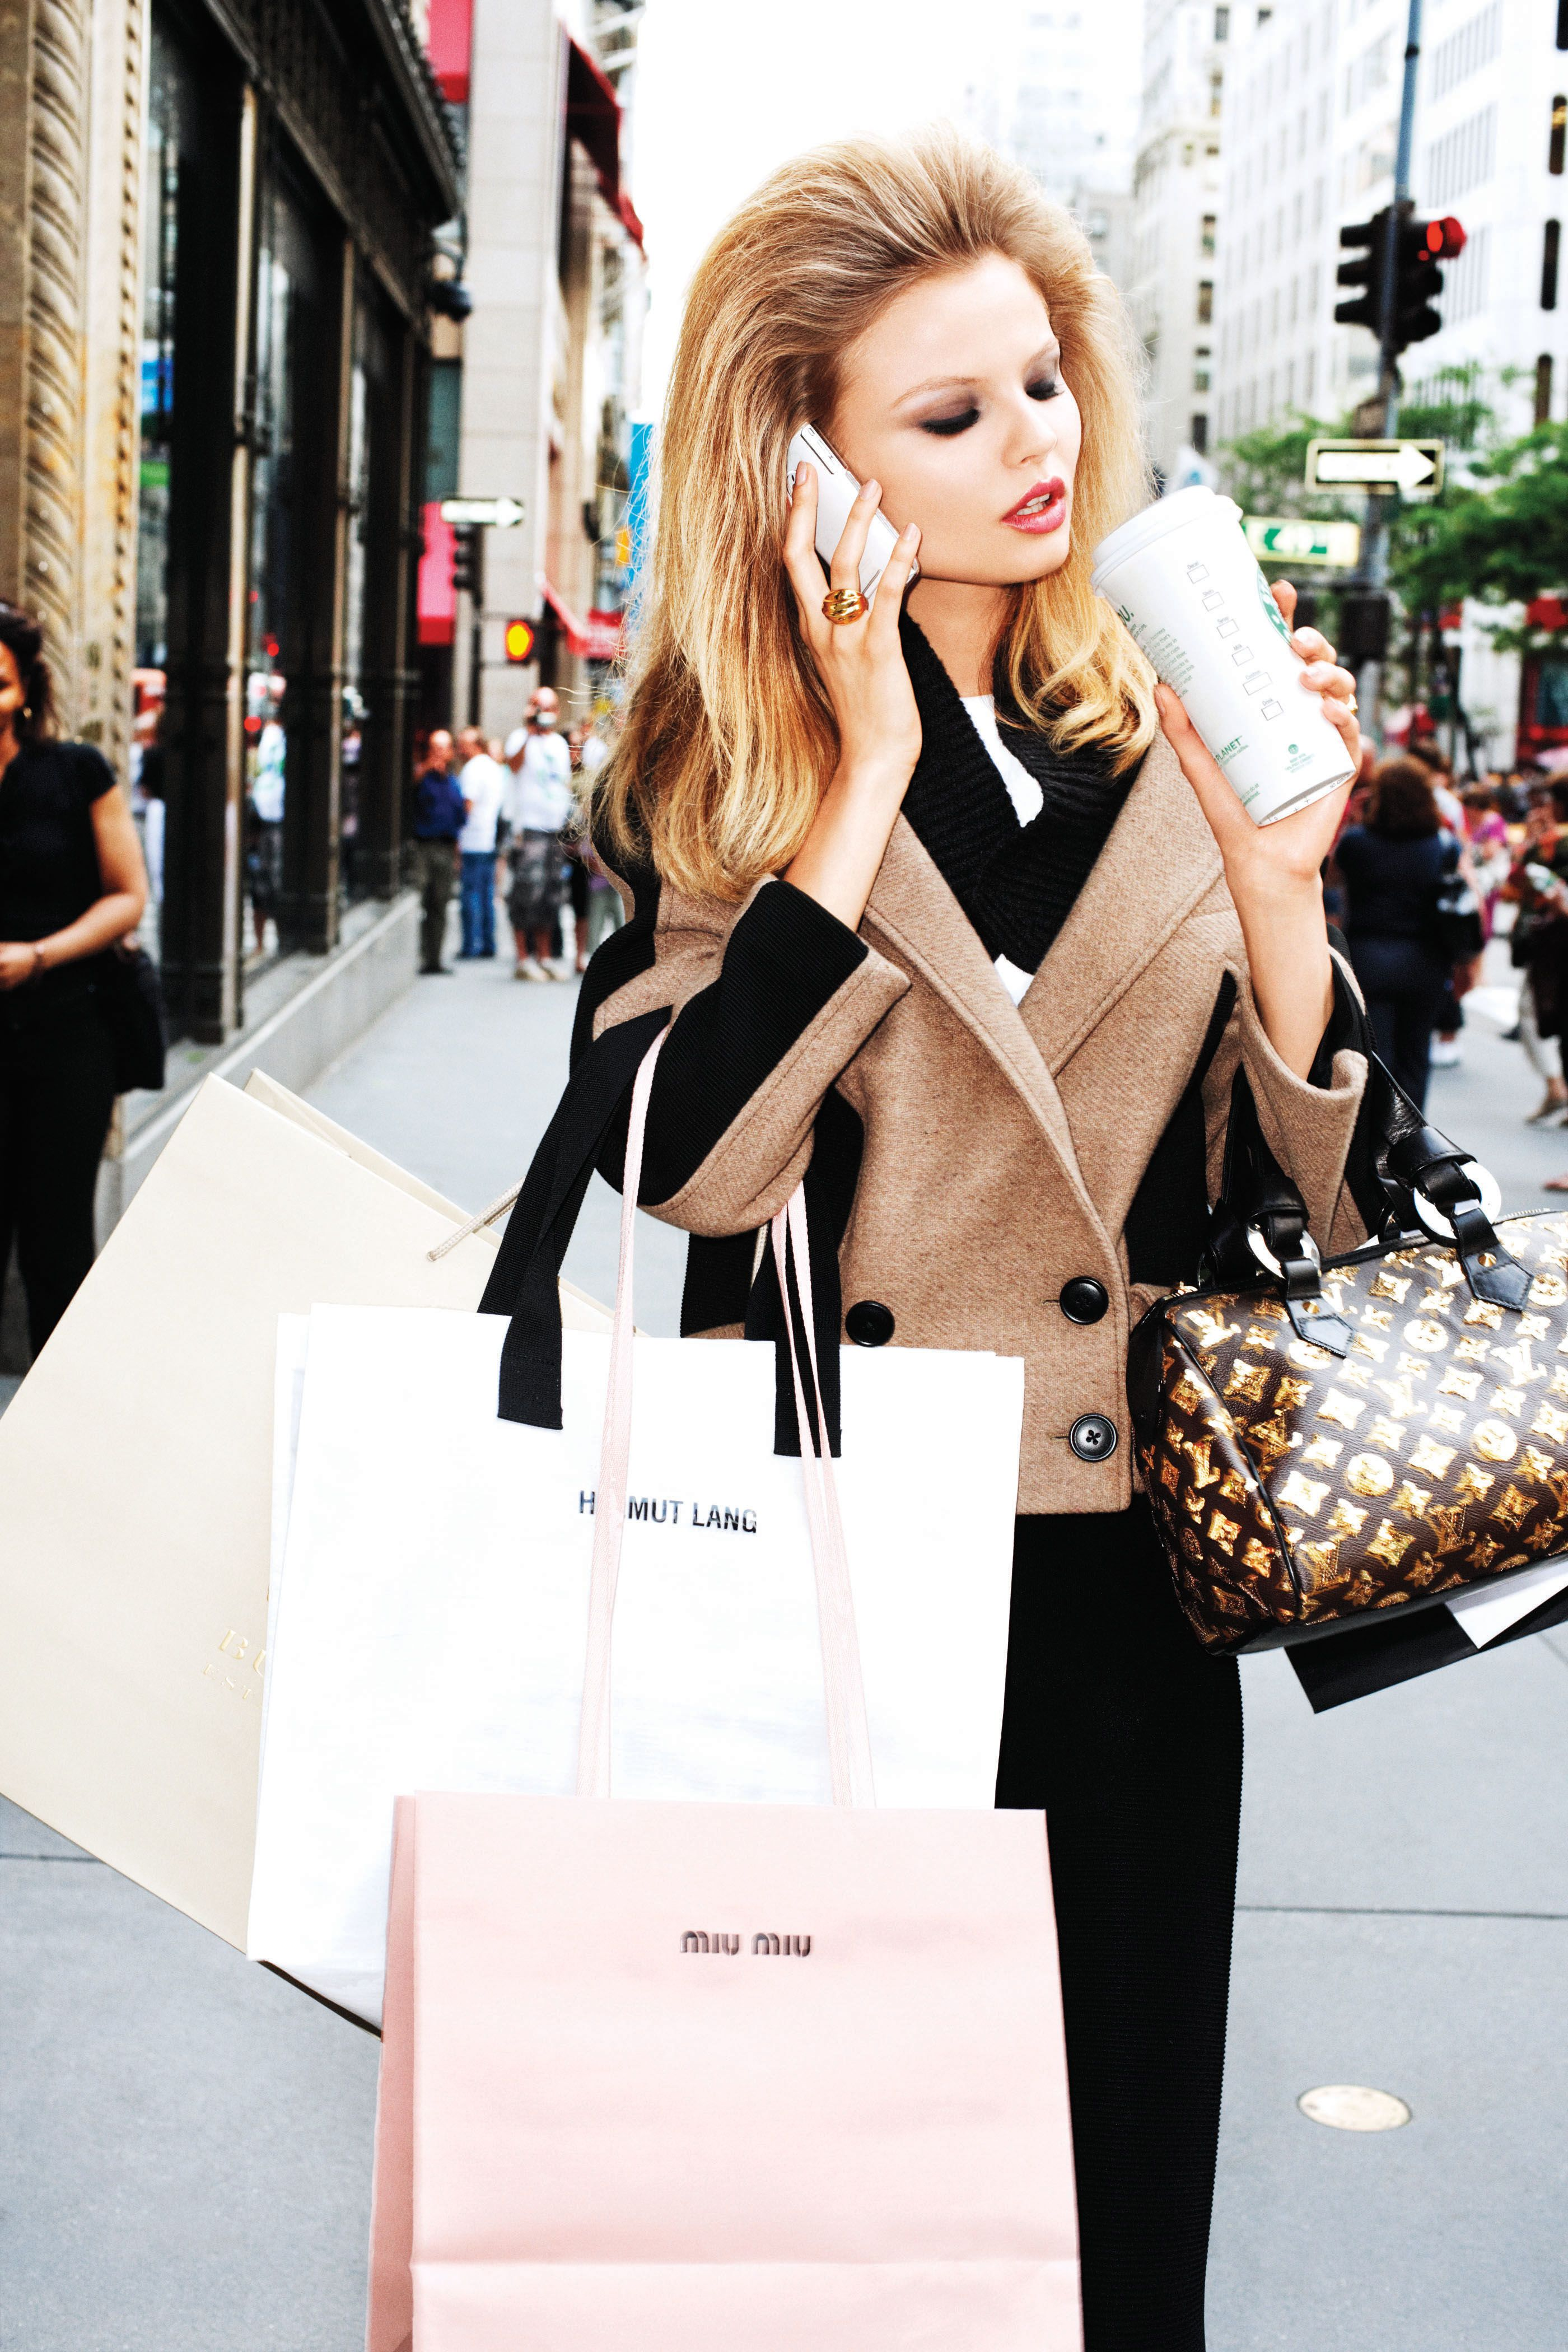 How to Become a Pro Consignment Shopper